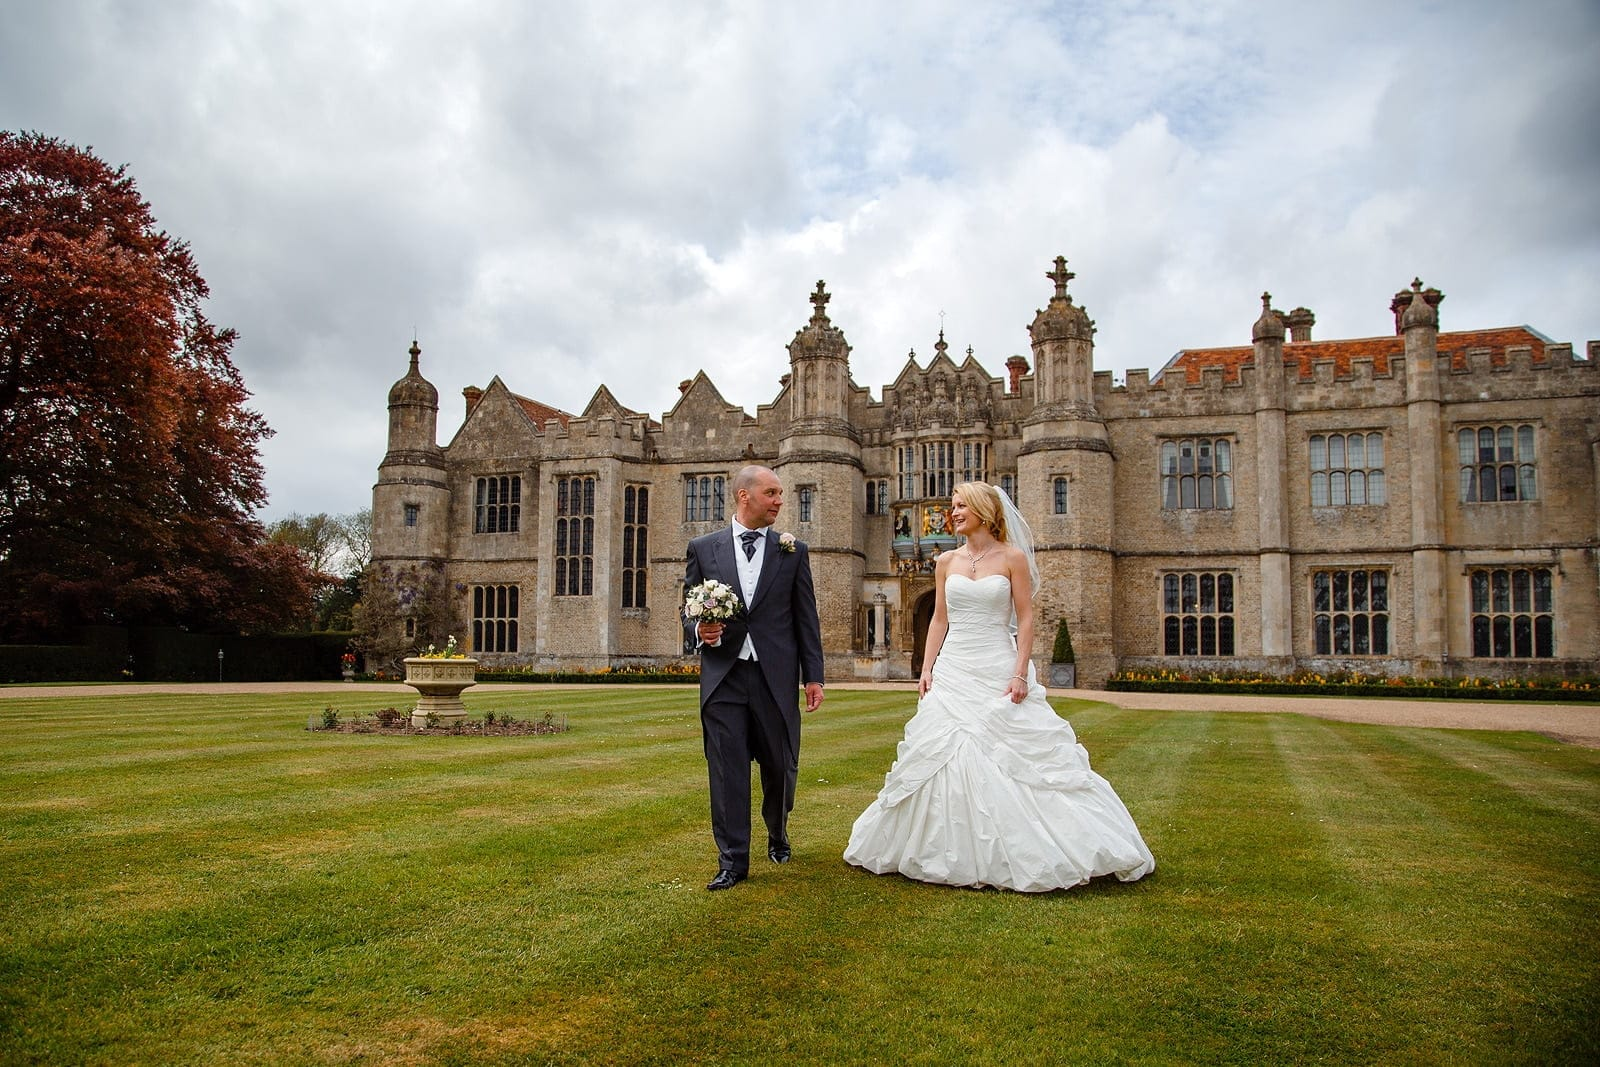 Spring wedding at Hengrave Hall